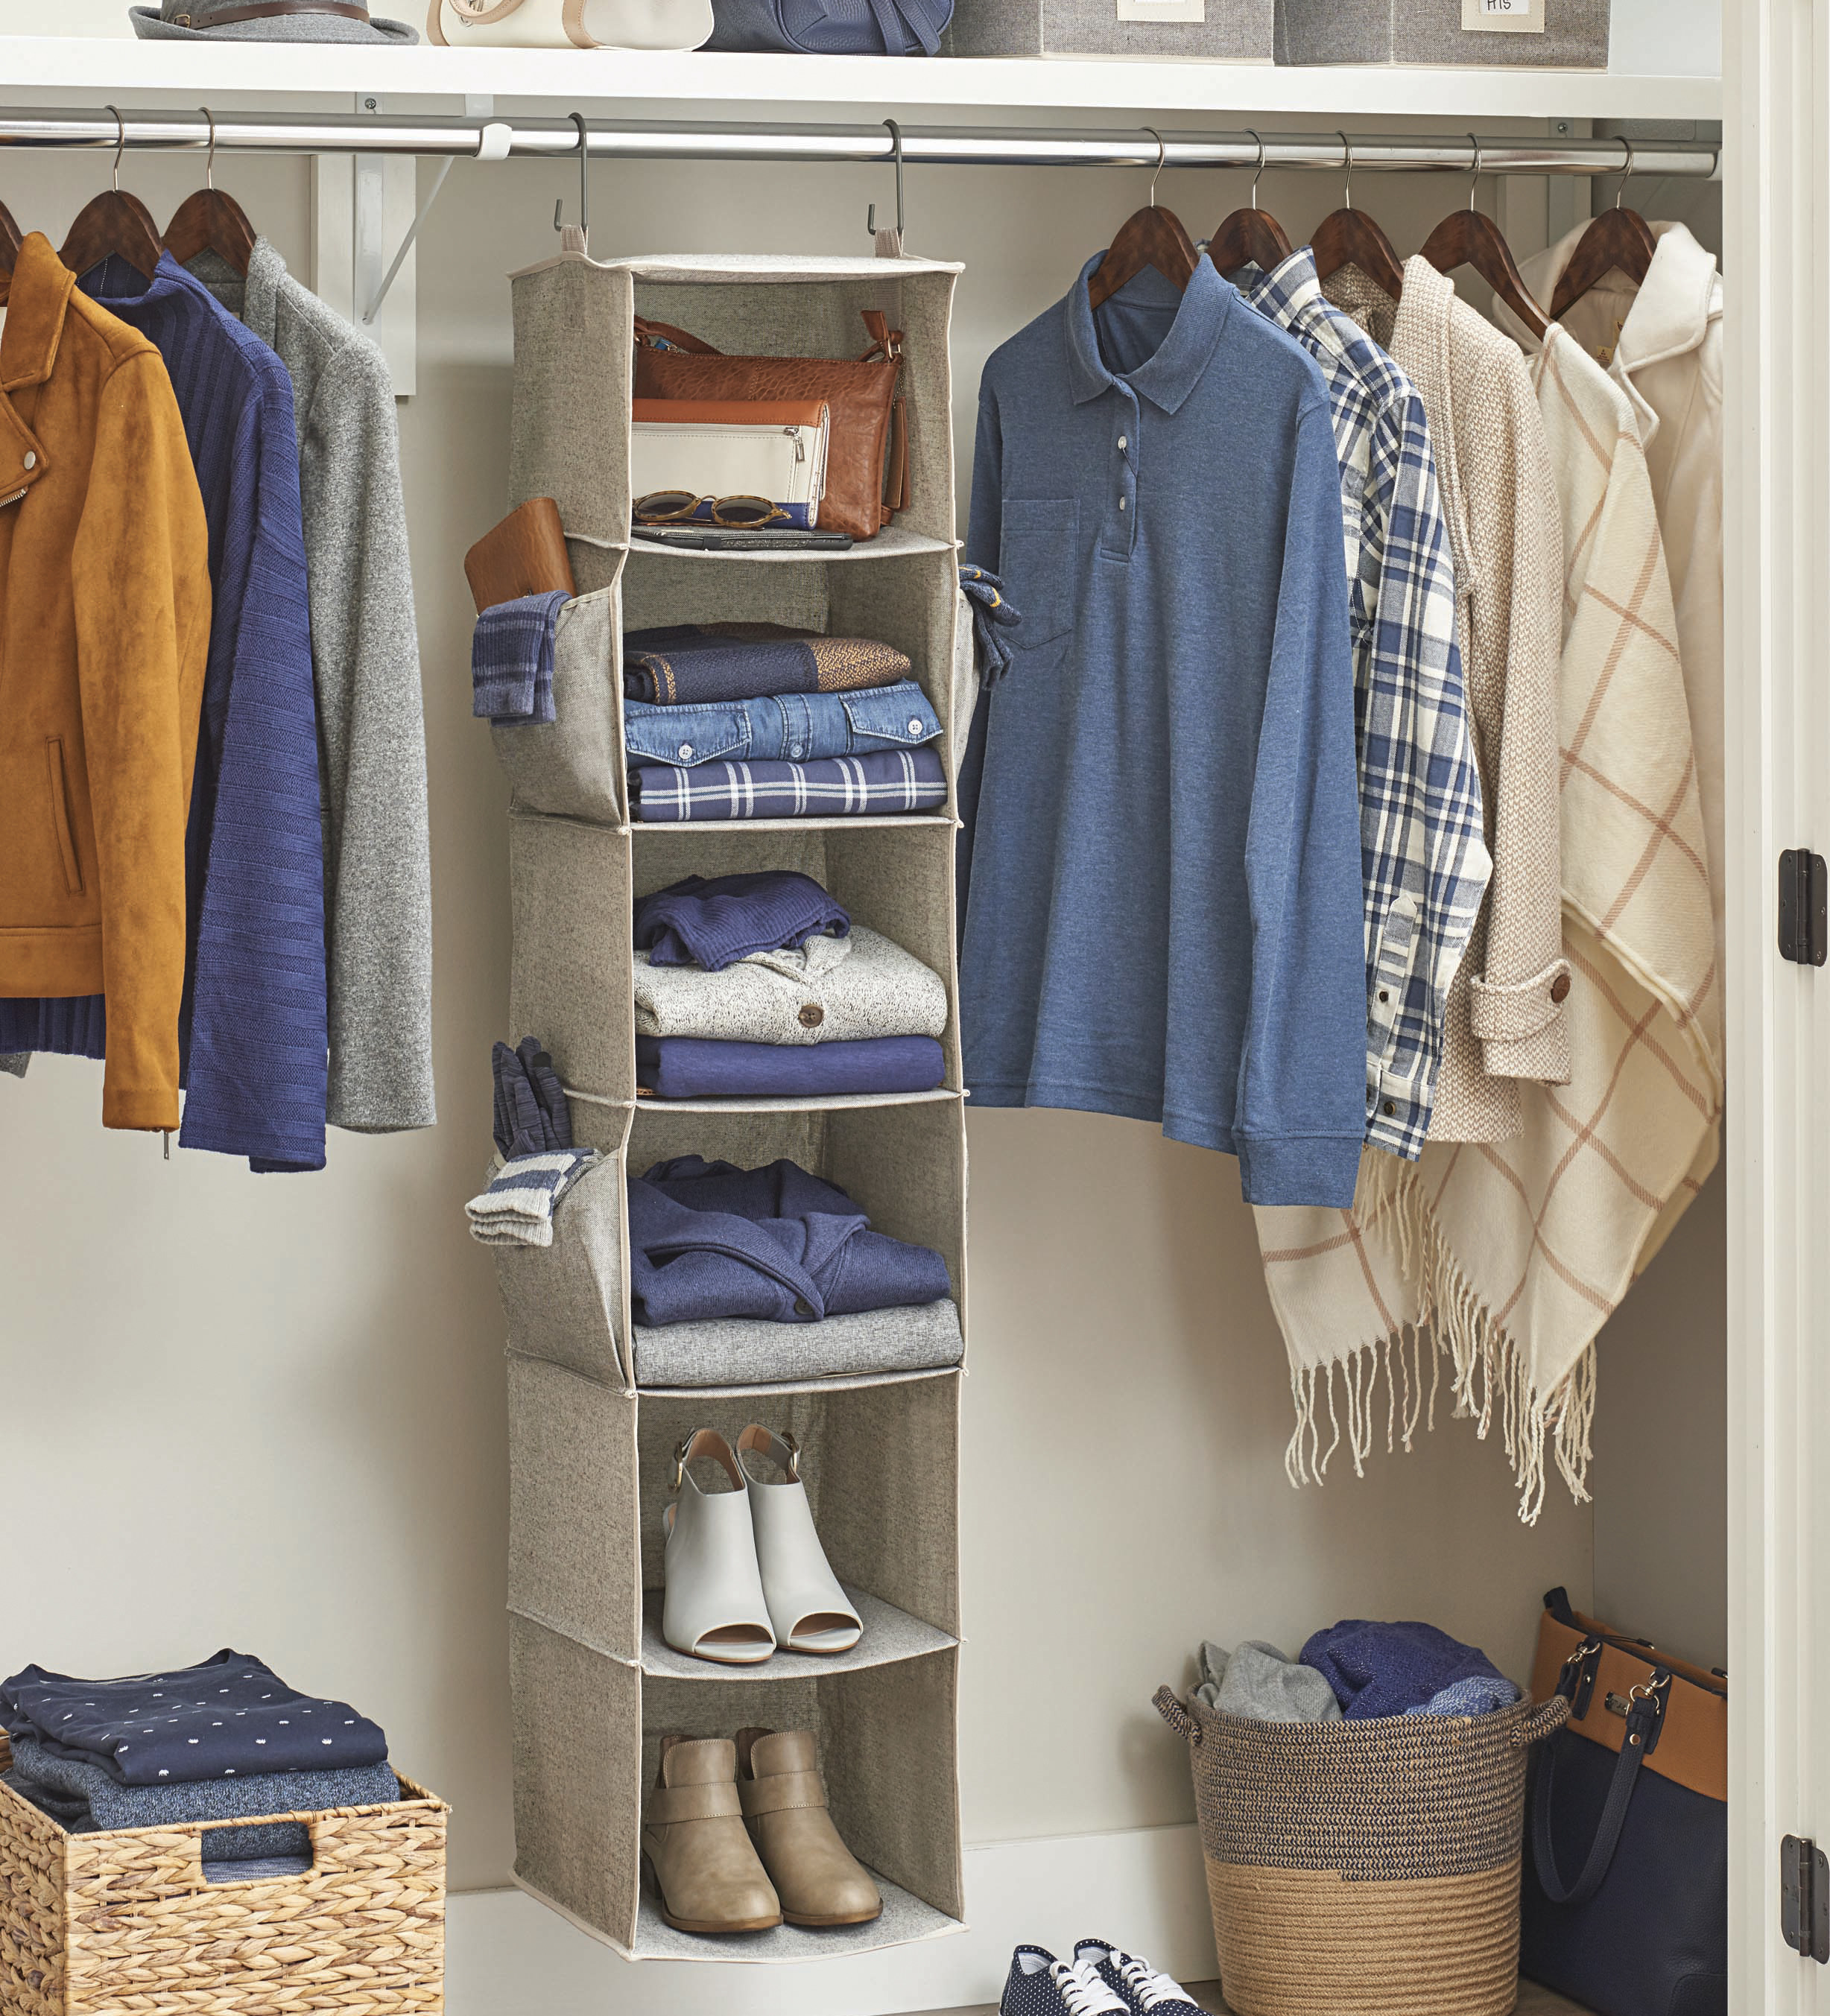 Hanging closet organizer inside a closet with accessories, clothes, and shoes on the shelves